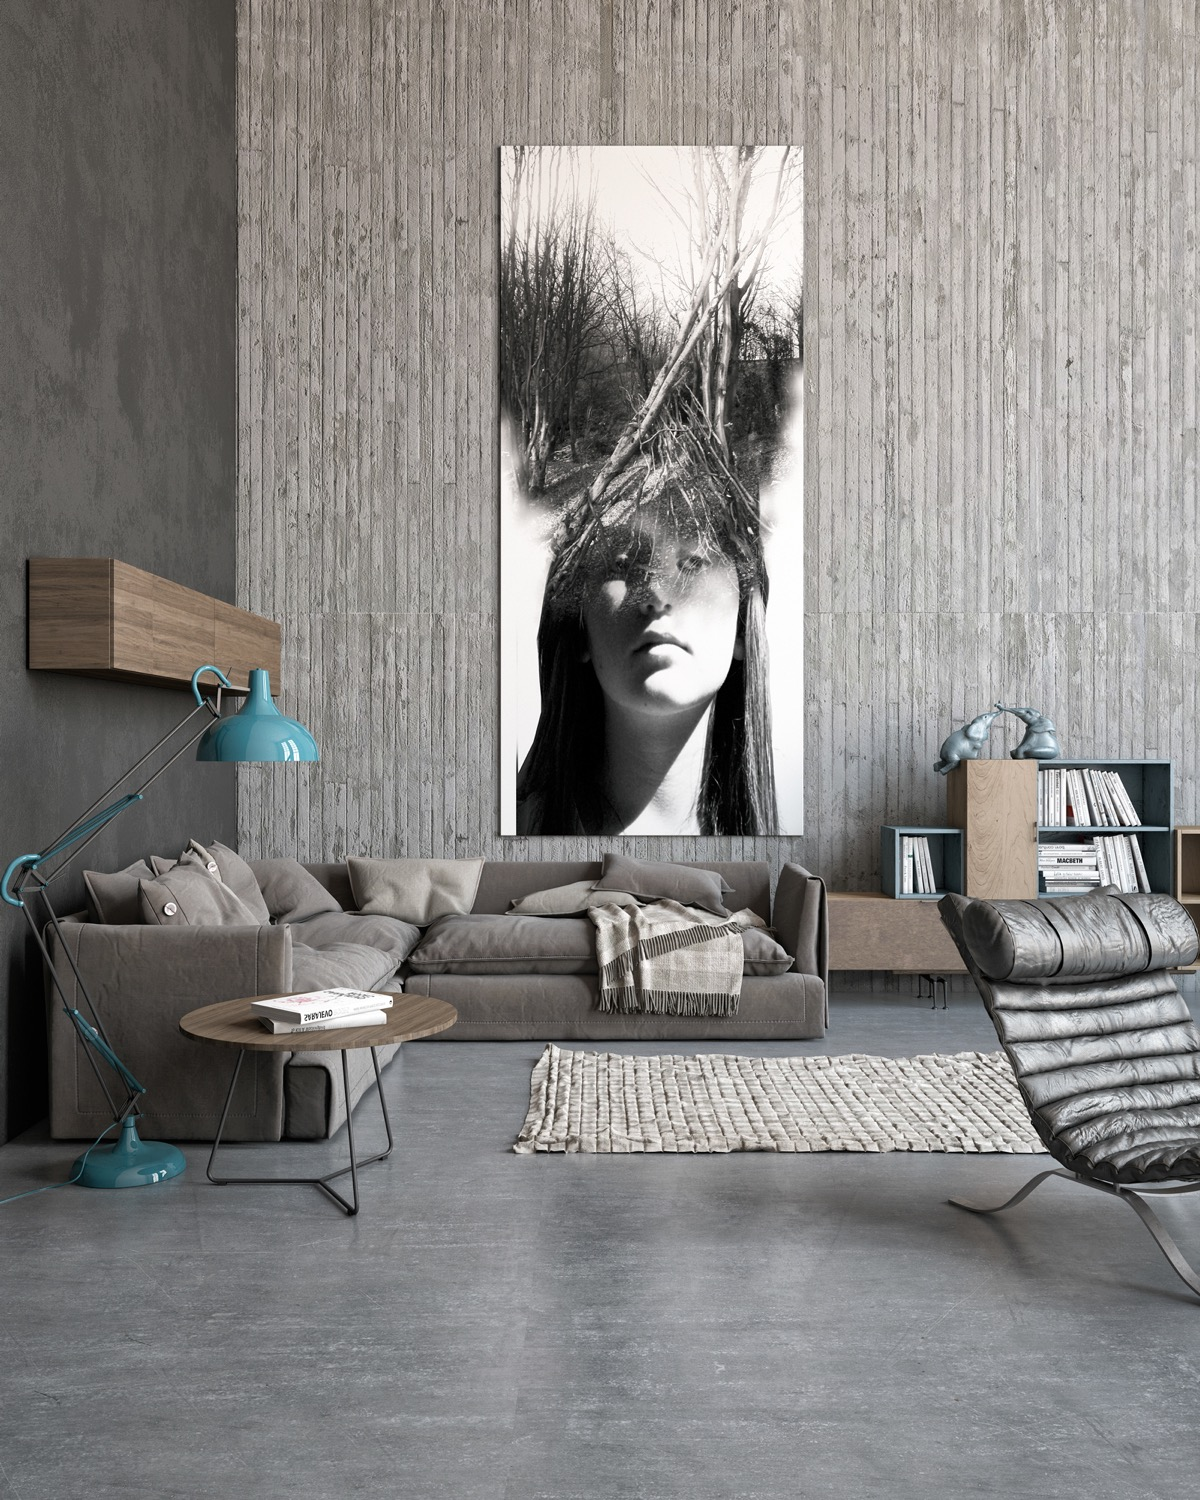 40 Stylish Living Rooms That Use Concrete To Stand Out images 26